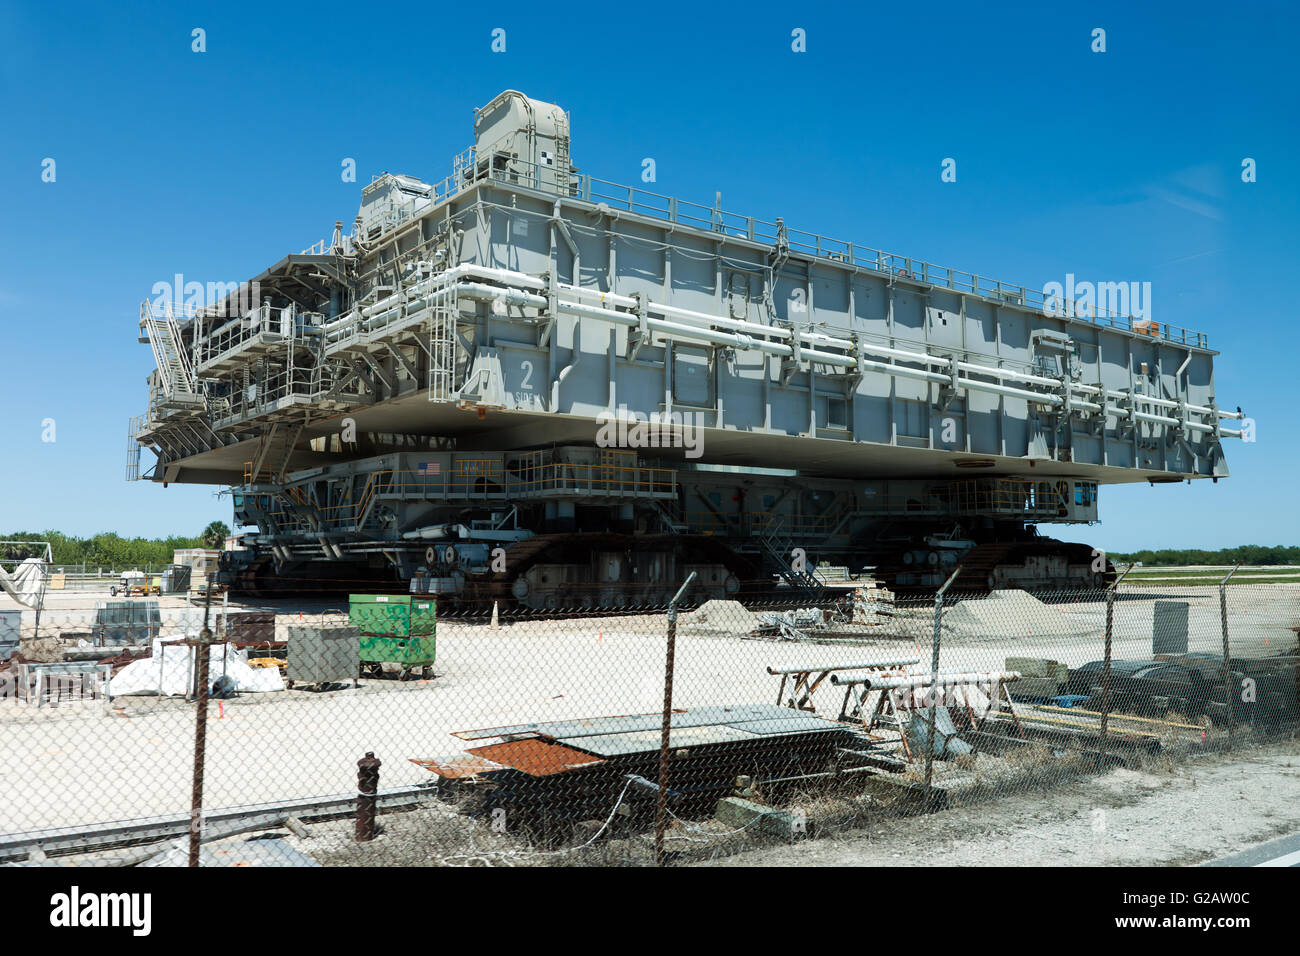 A NASA Crawler transporter, used to transport the Space ...